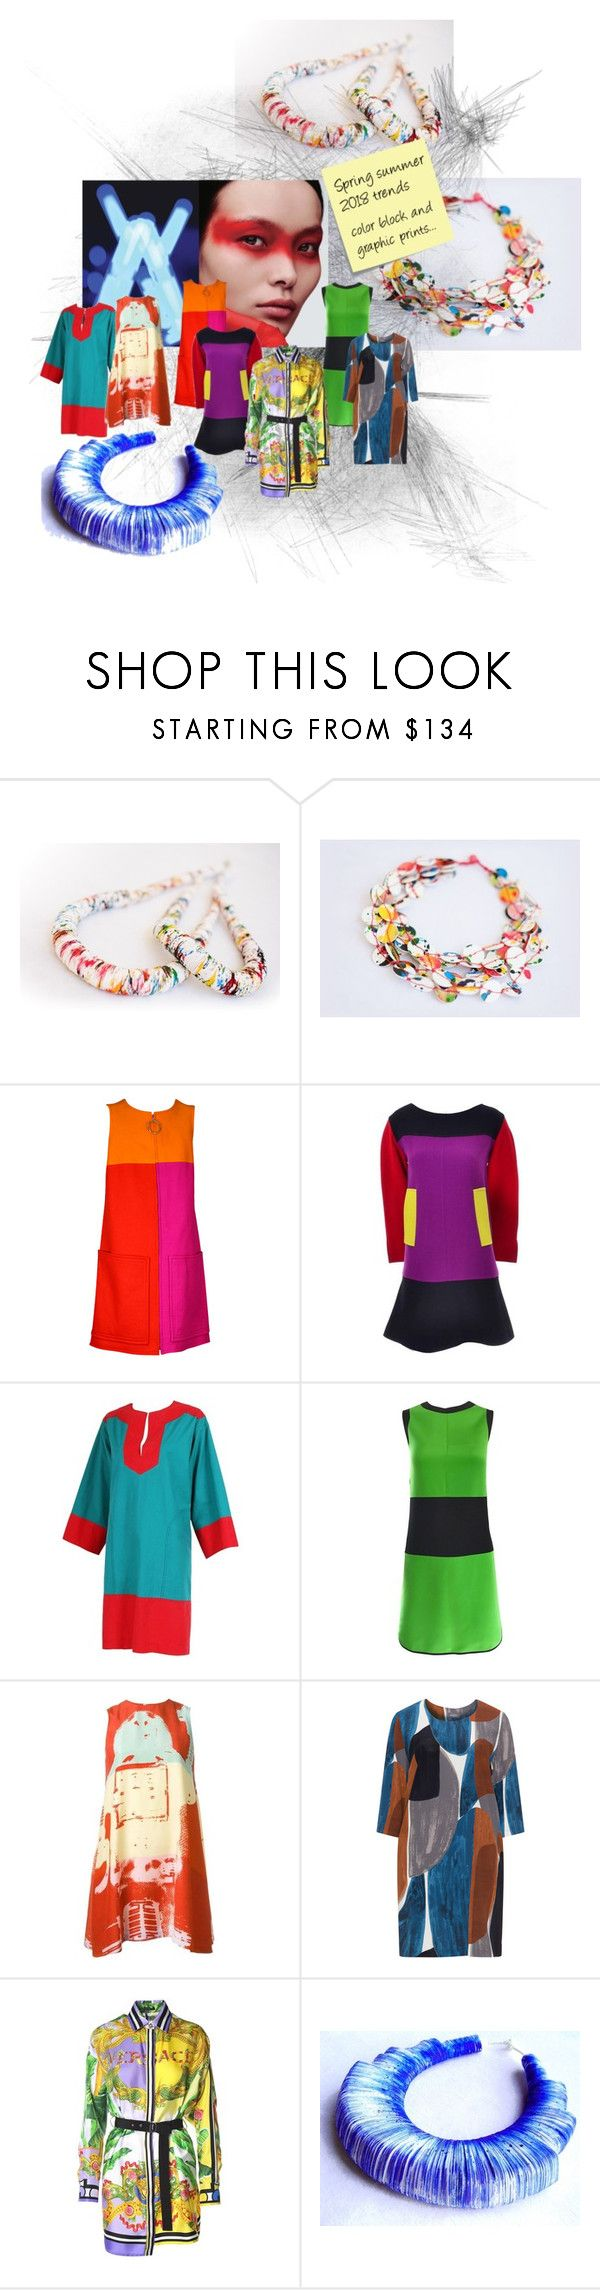 """""""Spring Summer 2018 Trends"""" by renterodesigns on Polyvore featuring moda, Christian Lacroix, Yves Saint Laurent, Stephen Sprouse, Samoon, Versace y Post-It"""